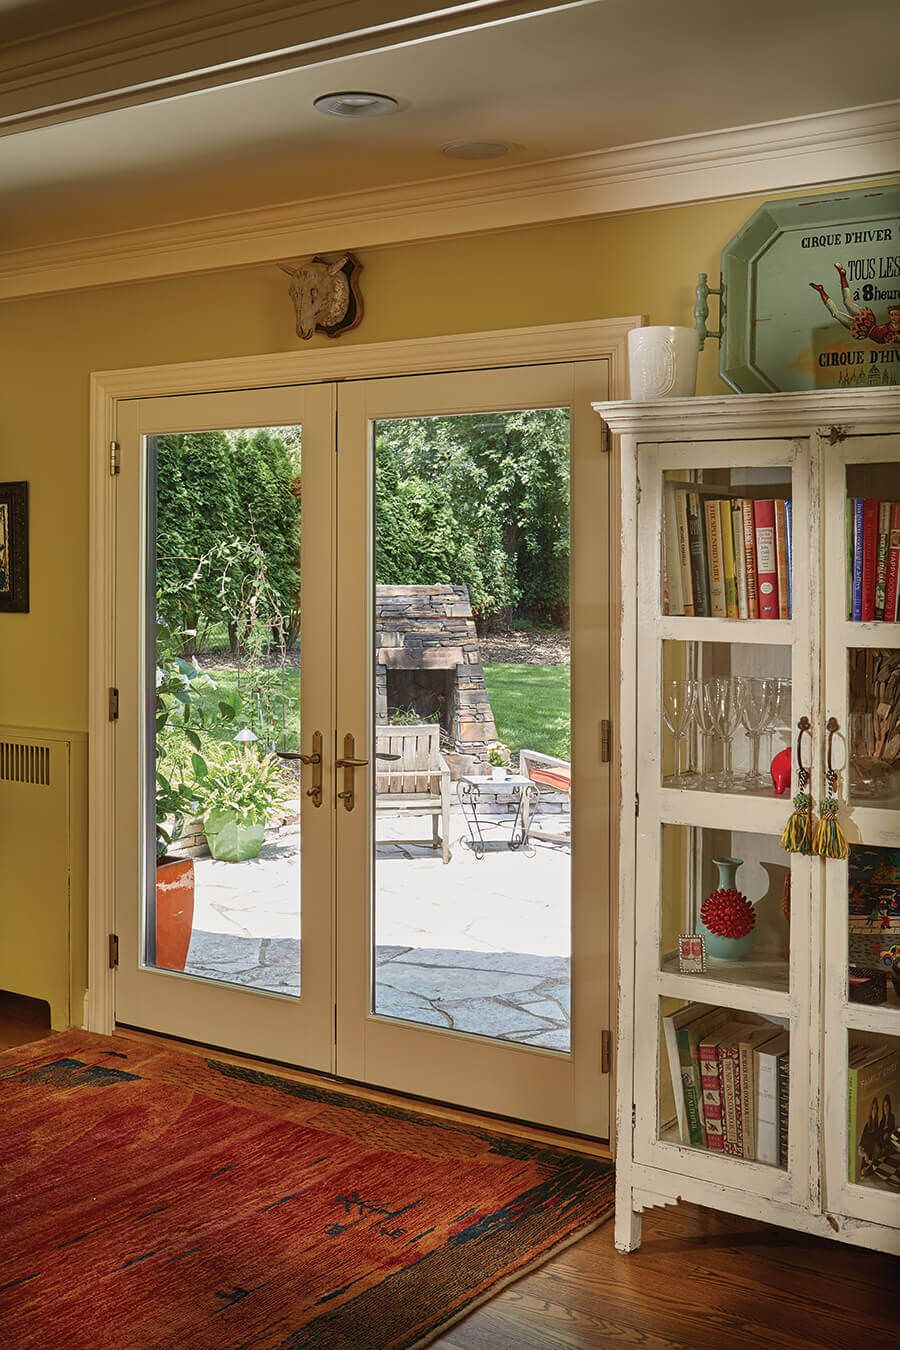 Id Ae831 A Breath Of Fresh Air The Windows In This Historic 1930s House Were Deteriorating And Bar Windows And Patio Doors 1930s House Breath Of Fresh Air